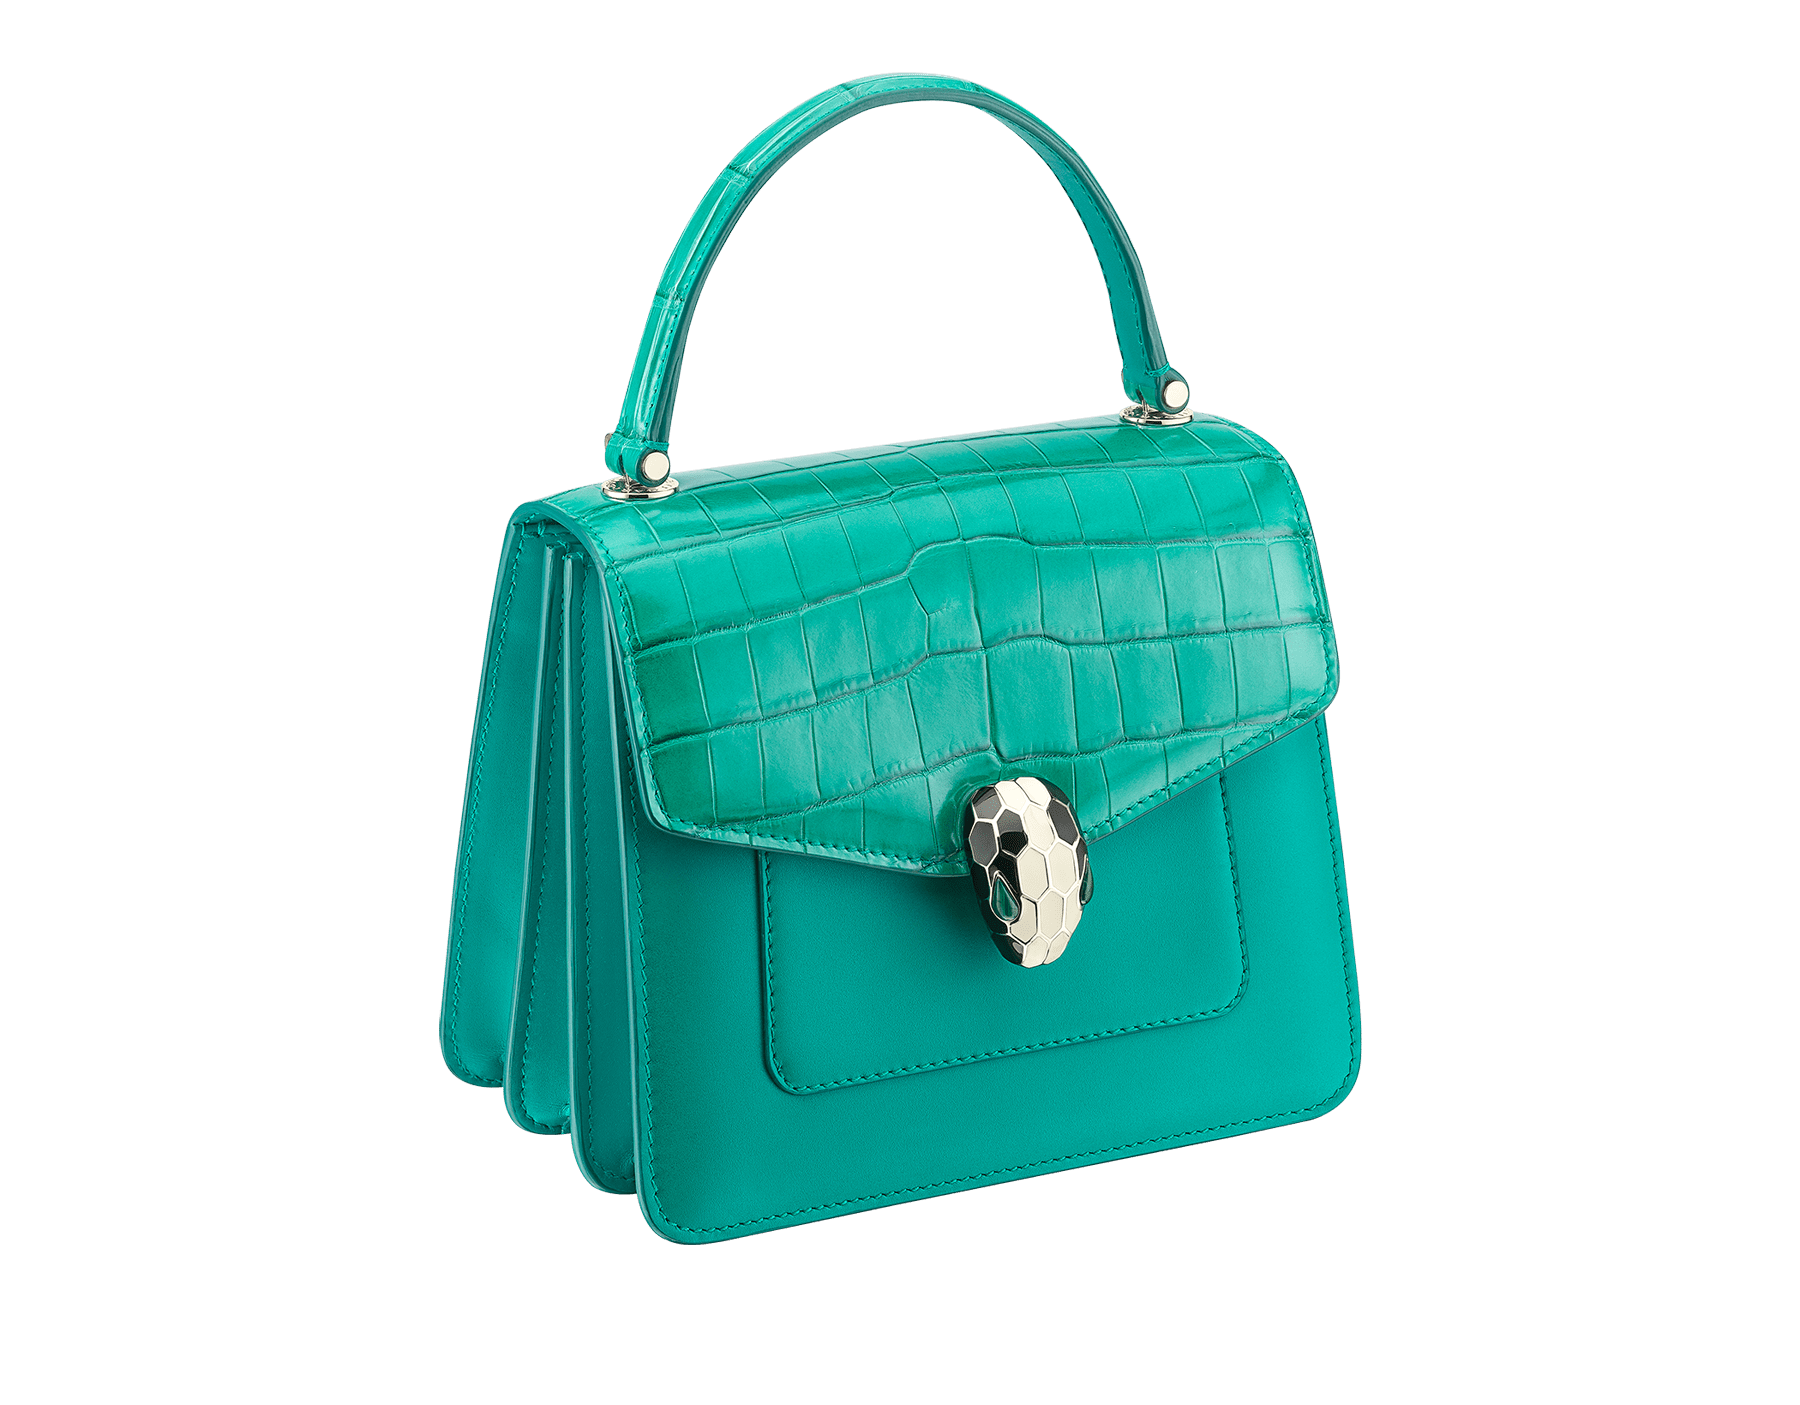 Serpenti Forever crossbody bag in tropical turquoise shiny croco skin and smooth calf leather. Snakehead closure in light gold plated brass decorated with black and white enamel, and green malachite eyes. 752-CLCR image 2